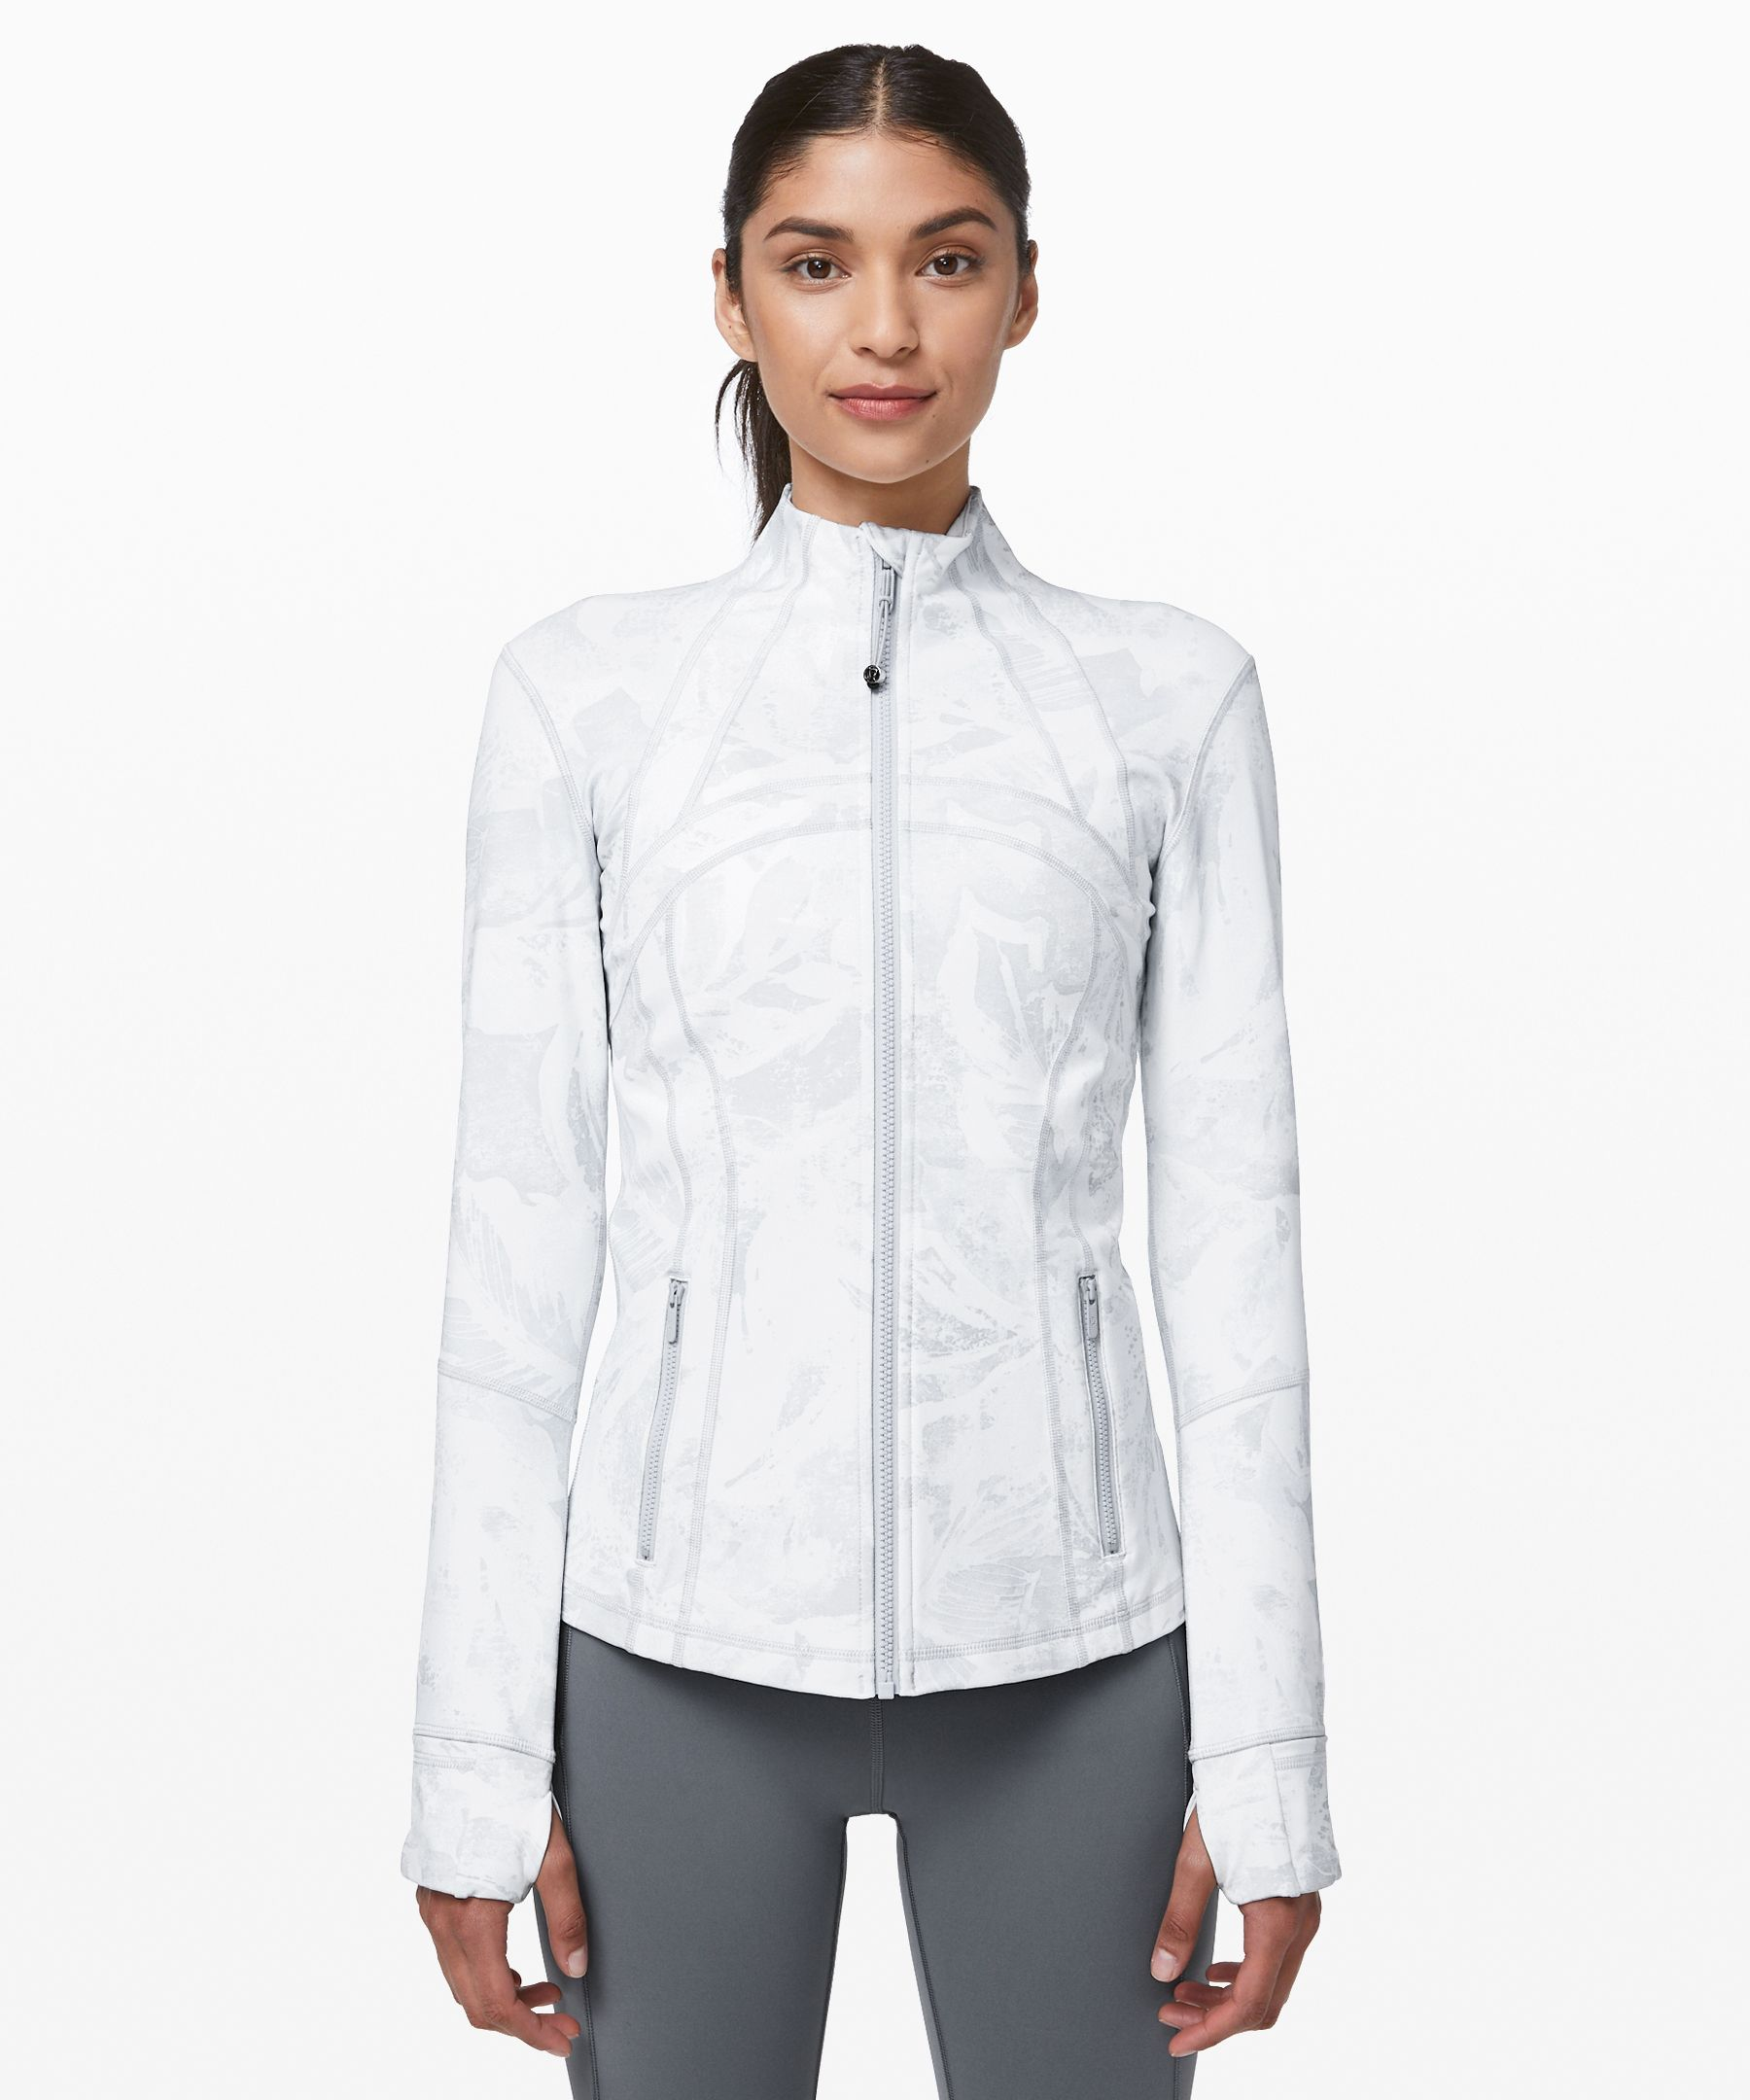 de0d84715d Define Jacket | Women's Jackets | lululemon athletica